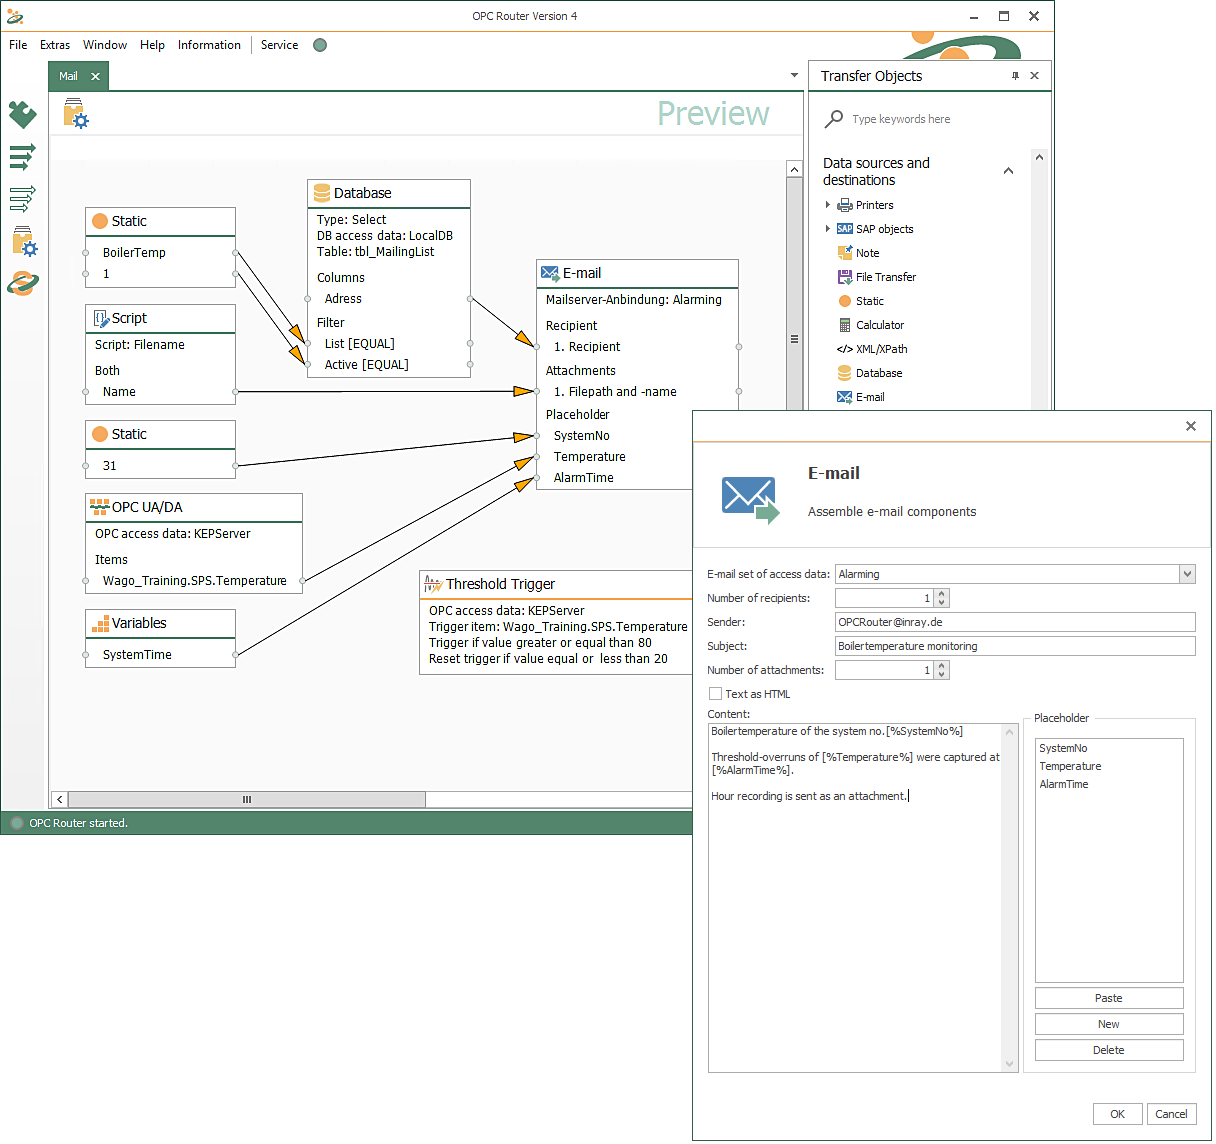 OPC Router Industry 4.0 software